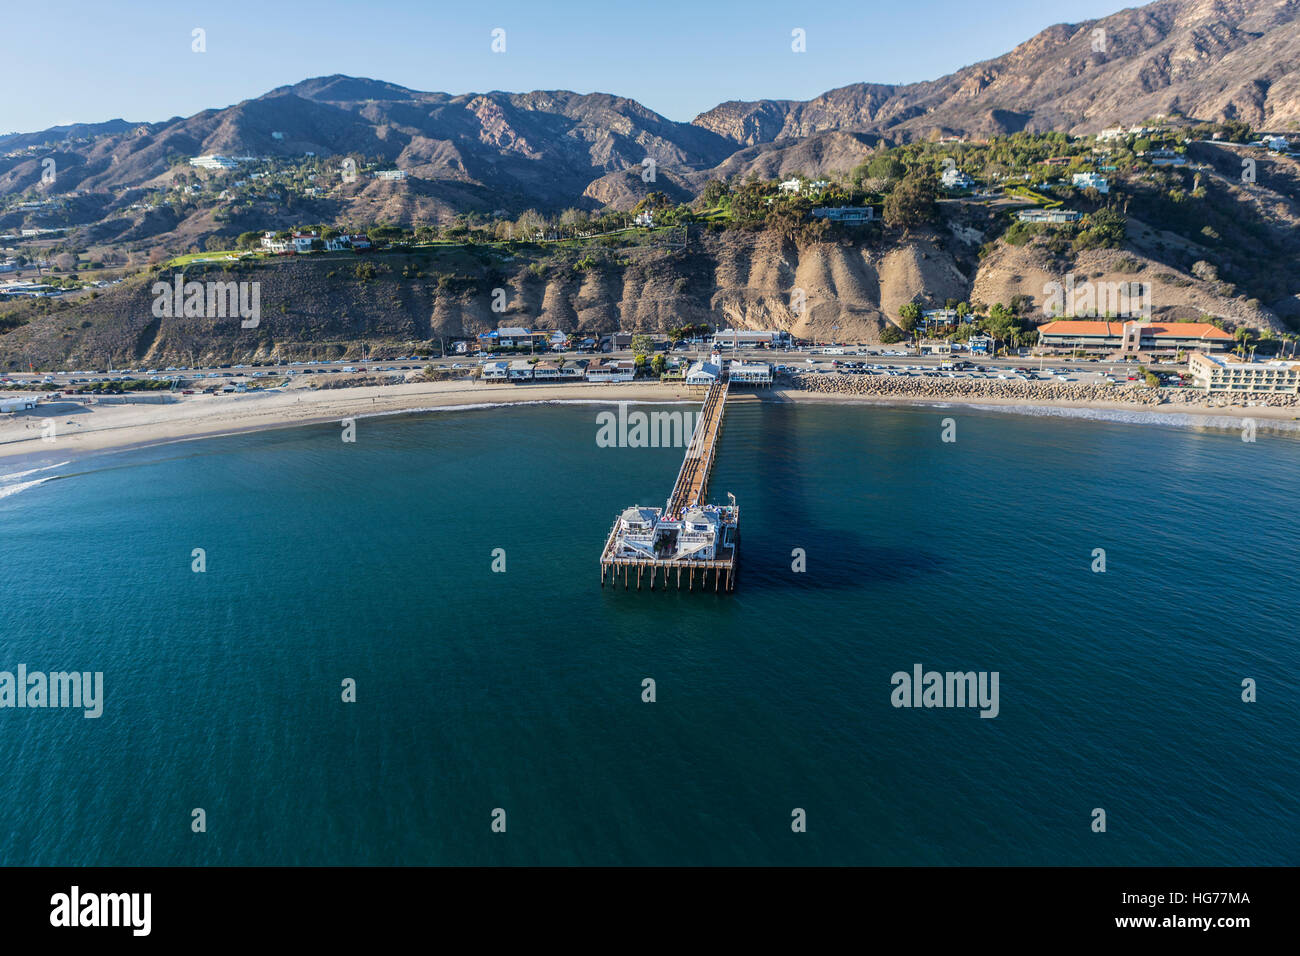 Aerial of Malibu Pier State Park and the Santa Monica Mountains near of Los Angeles California. Stock Photo